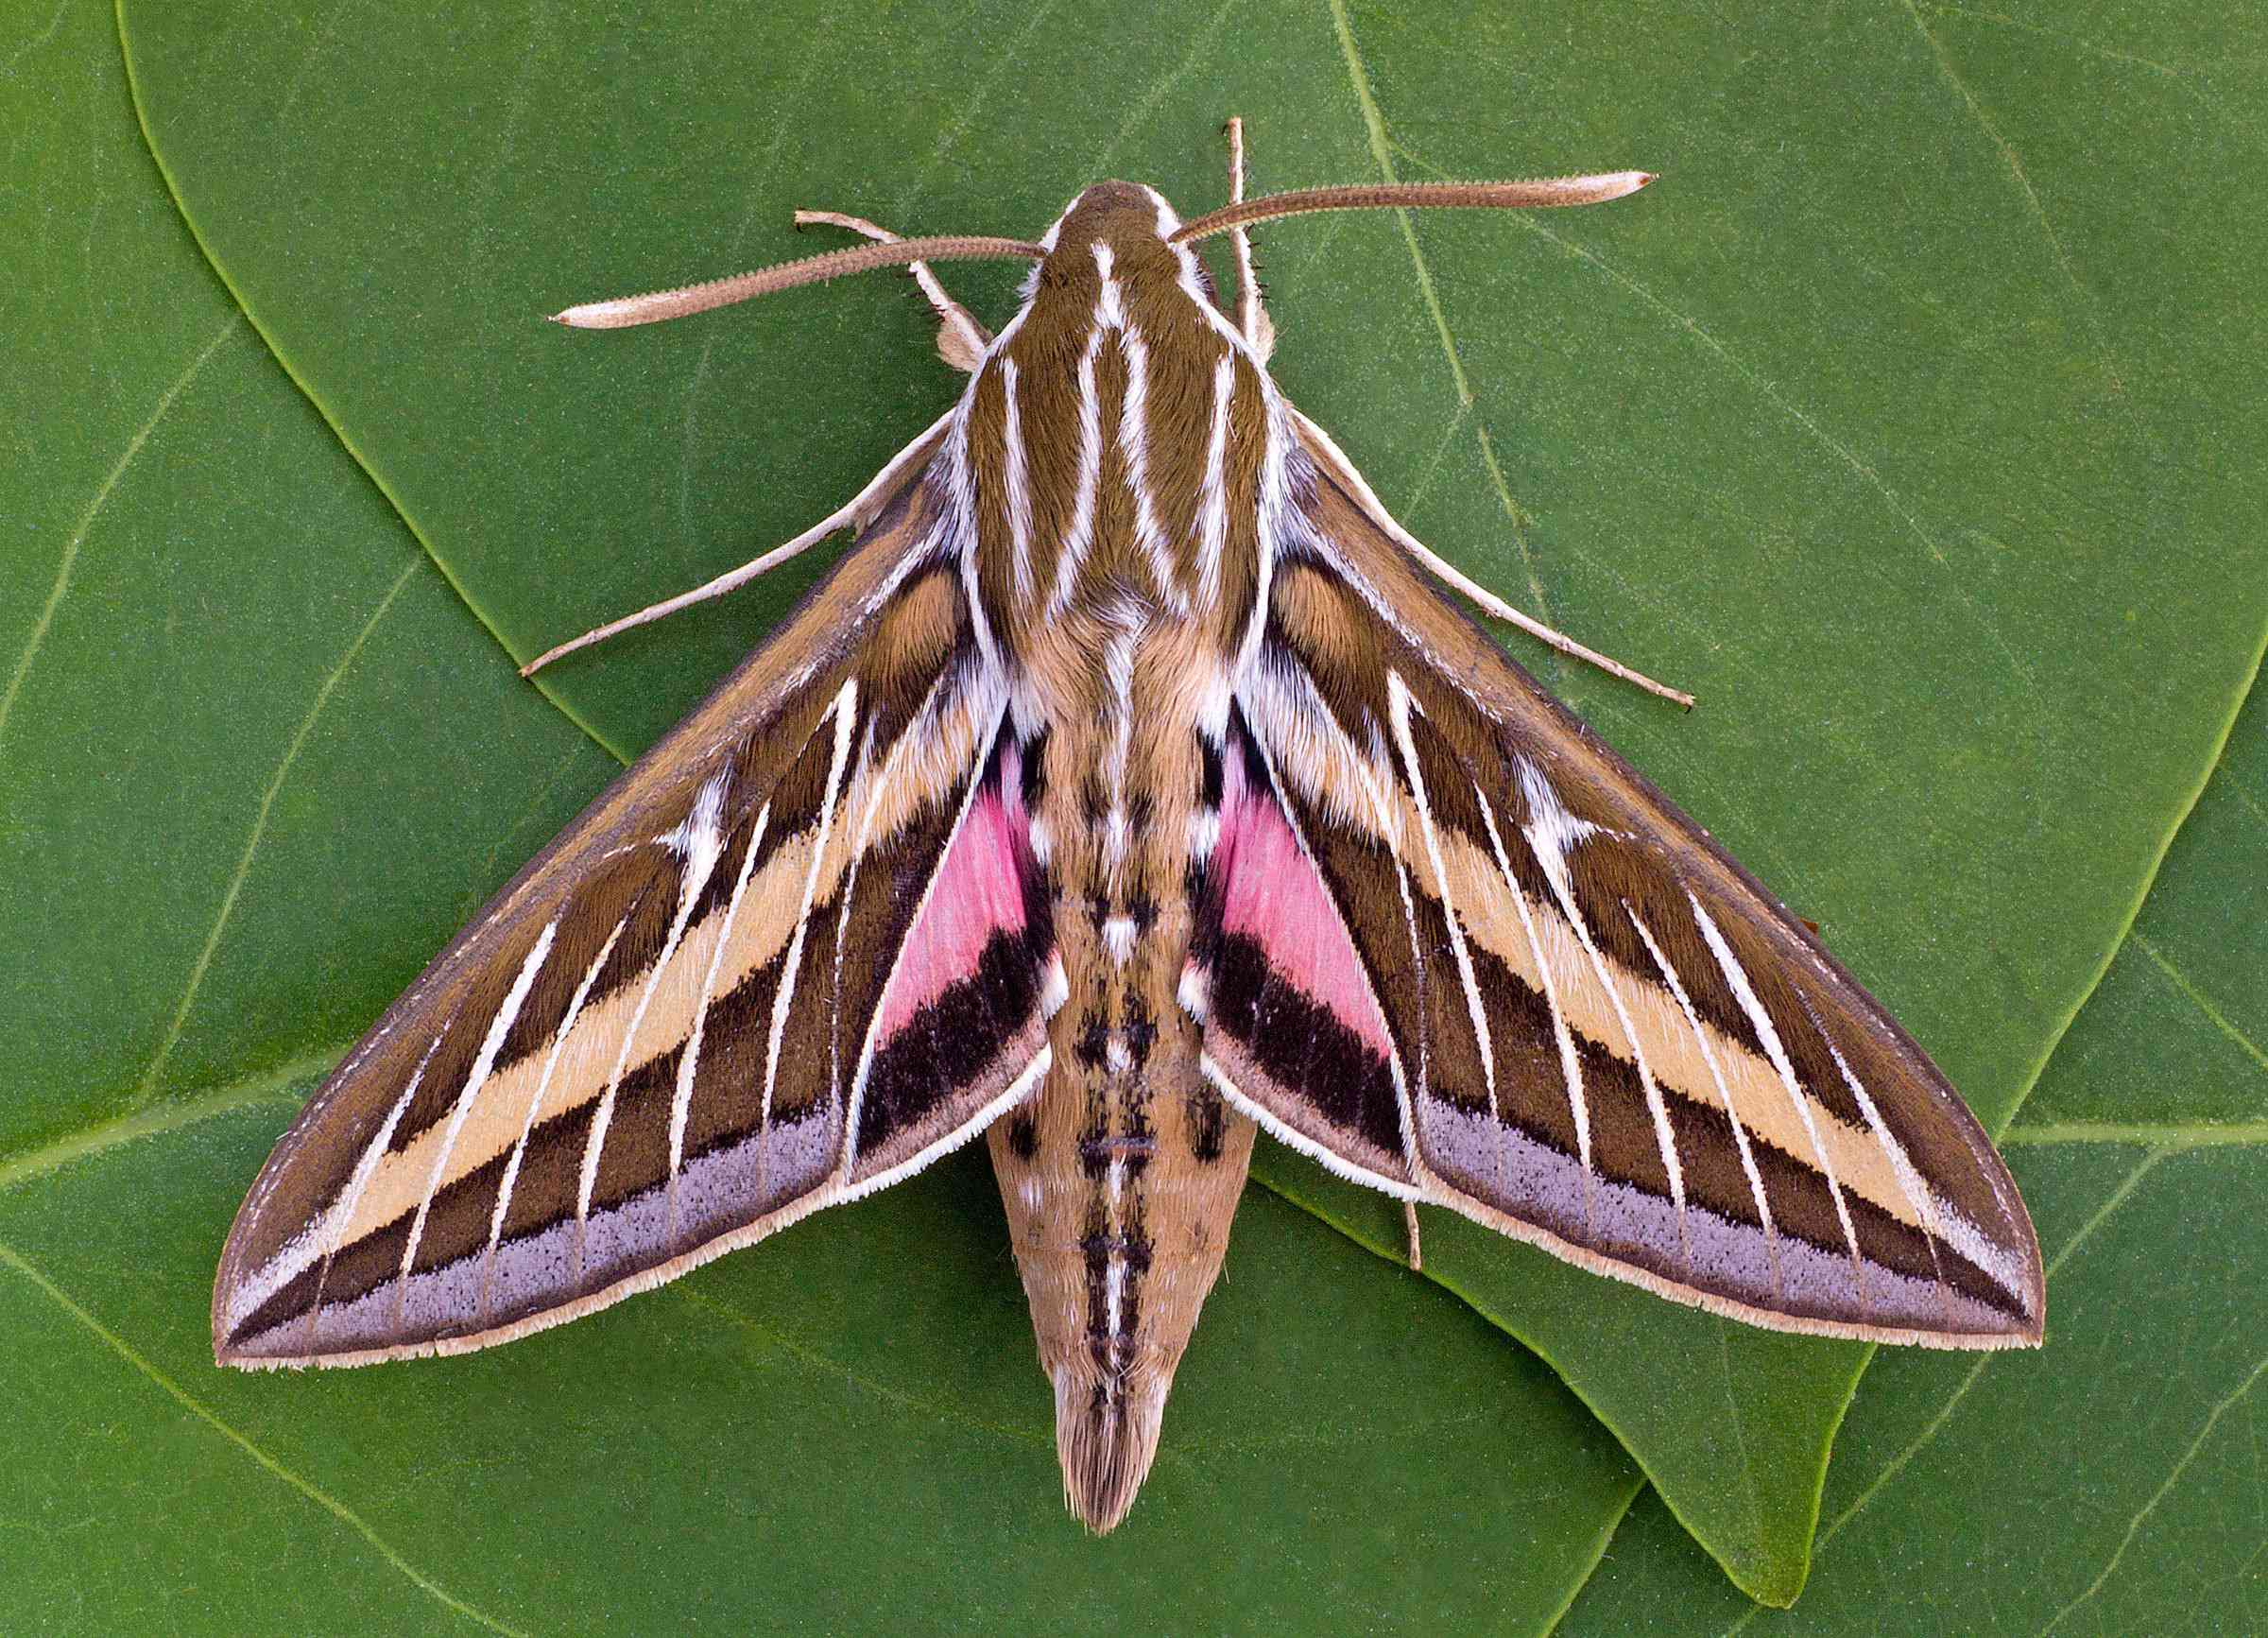 A brown and pink moth with white lines on its wings and abdomen